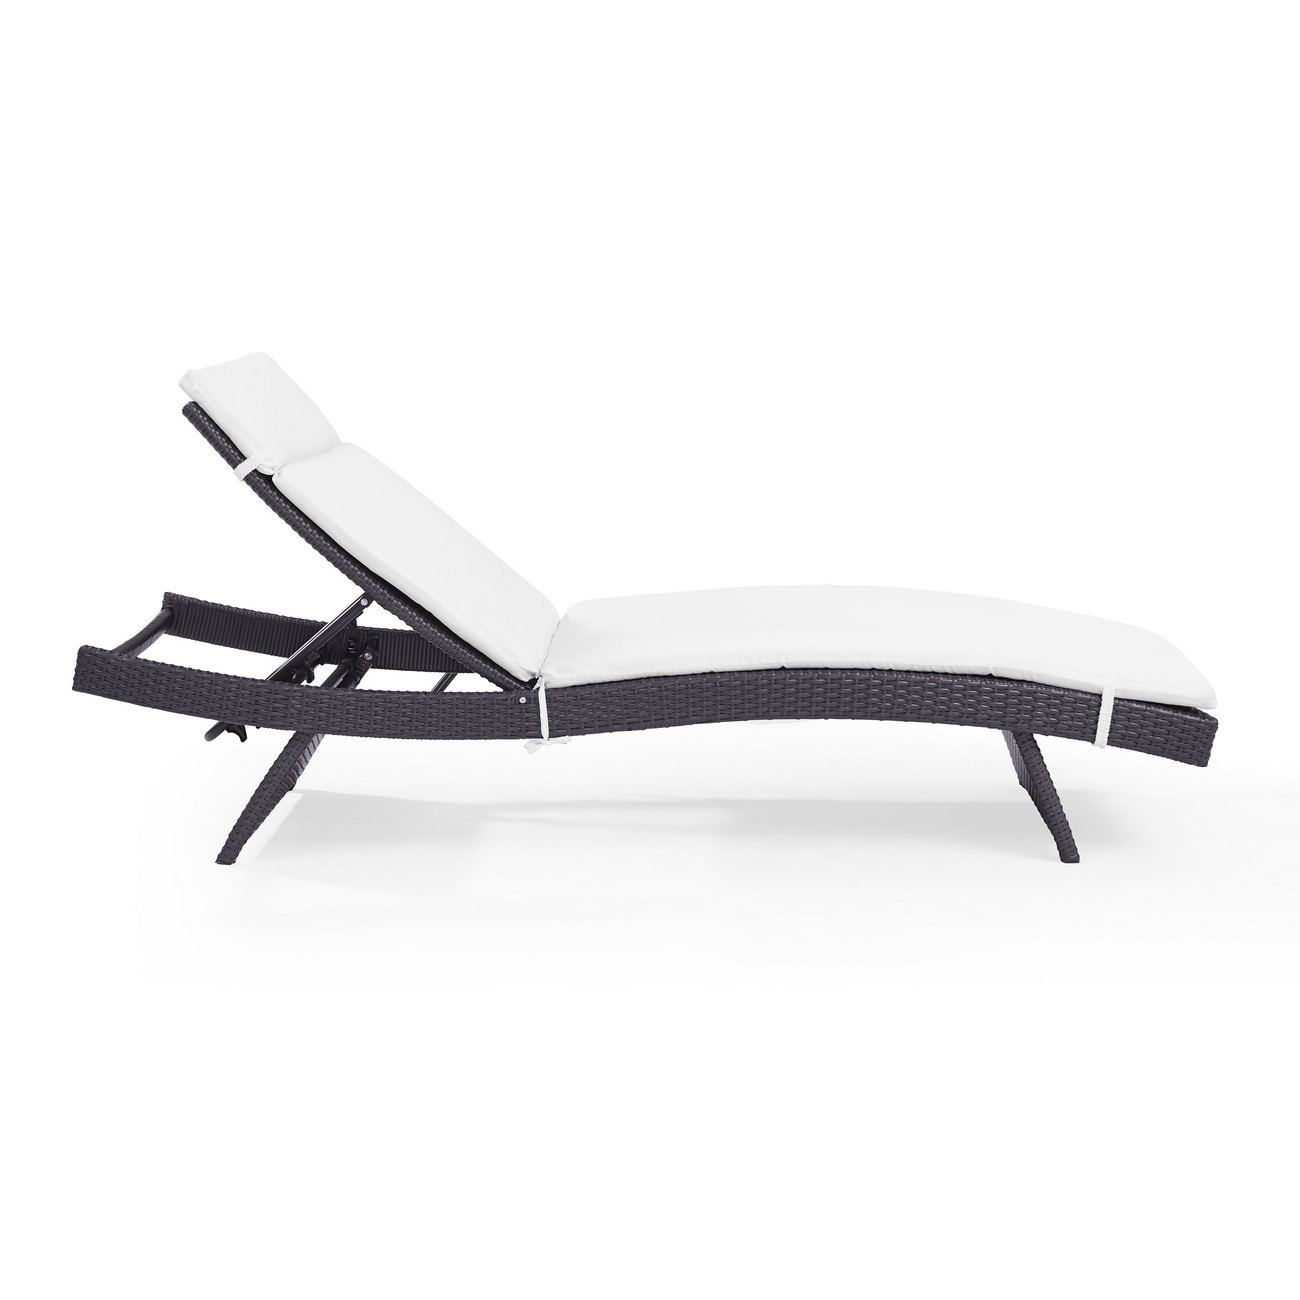 Biscayne Chaise Lounge w/ White Cushion - Crosley CO7144BR-WH